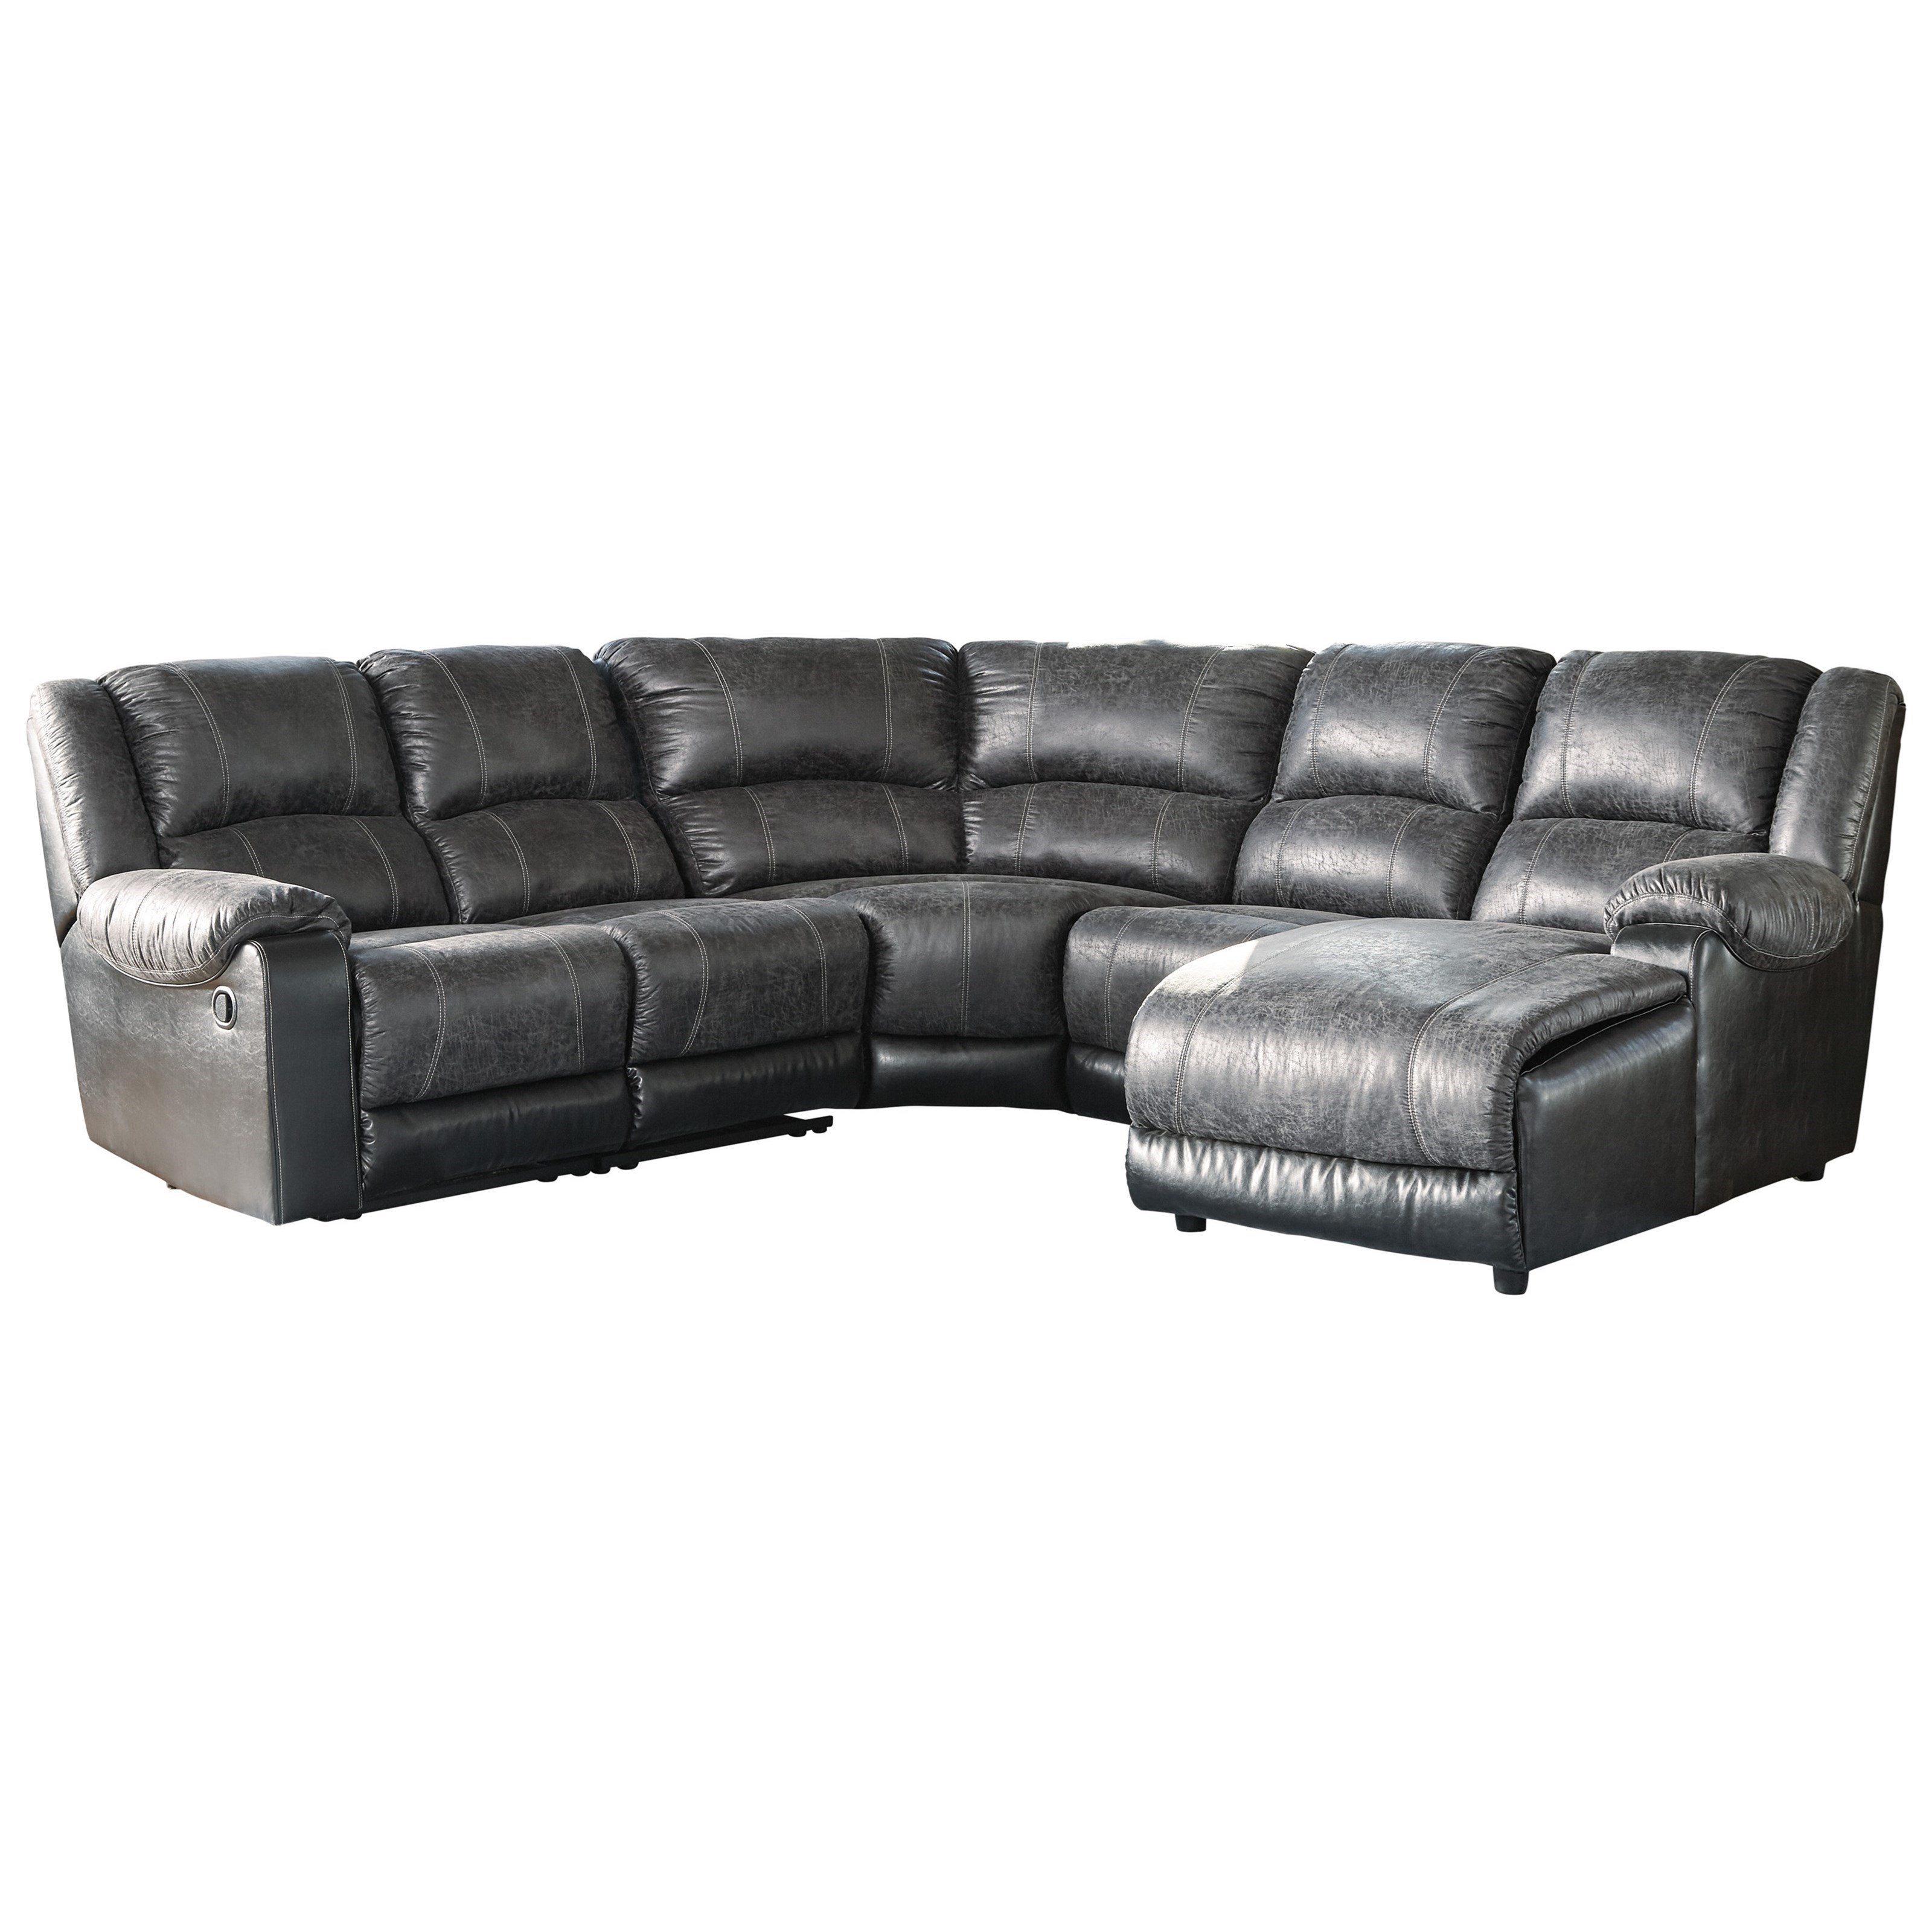 Ashley signature design nantahala faux leather reclining for Ashley chaise lounge sofa